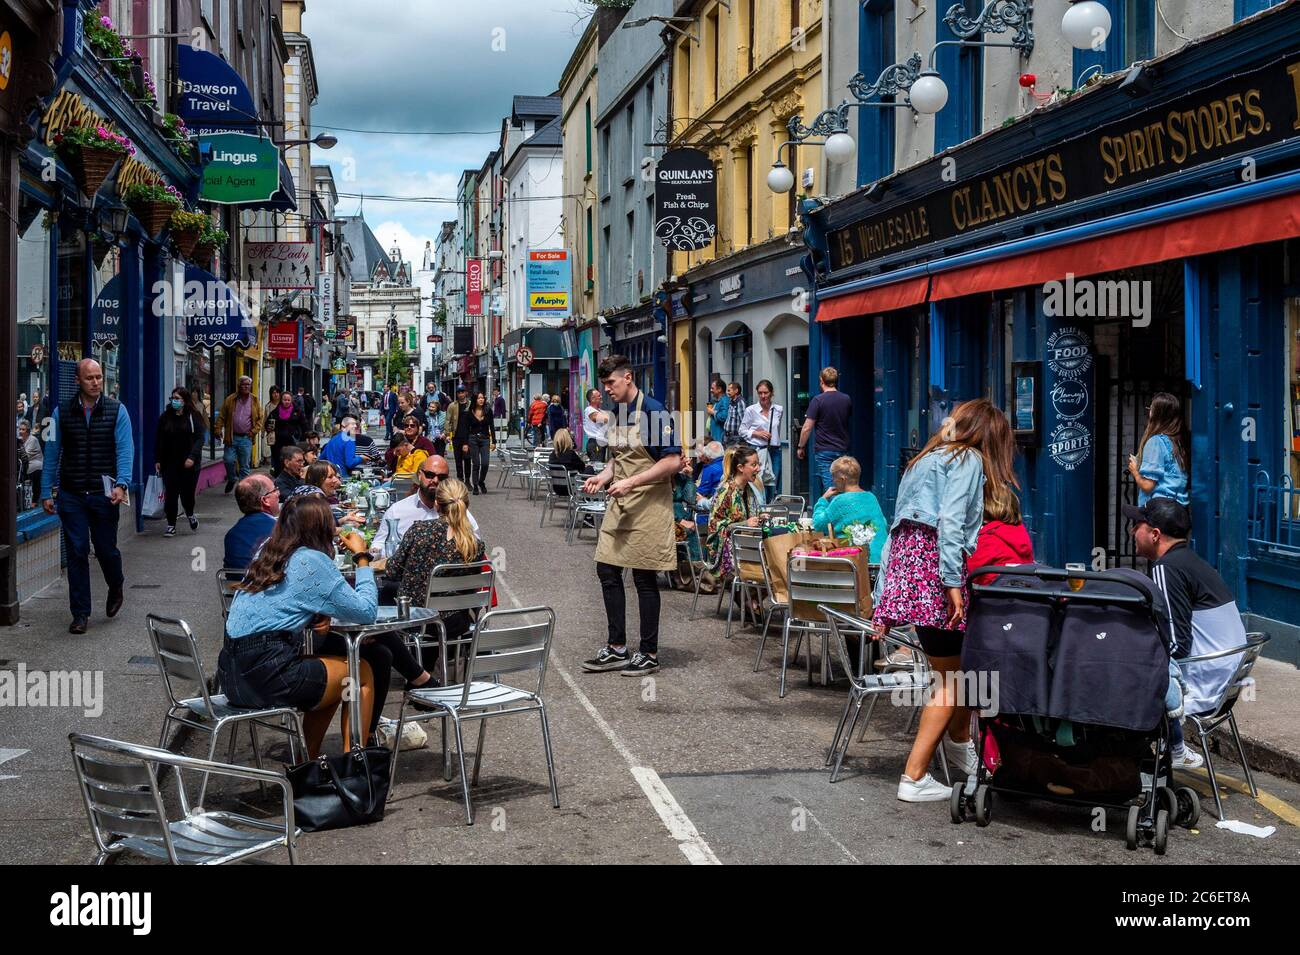 cork-ireland-9th-july-2020-a-number-of-cafs-and-restaurants-in-cork-city-have-implemented-al-fresco-eating-on-reopening-after-easing-of-some-covid-19-restrictions-cafs-are-limiting-indoor-seating-and-taking-customers-names-and-phone-numbers-for-the-purposes-of-contact-tracing-credit-ag-newsalamy-live-news-2C6ET8A.jpg